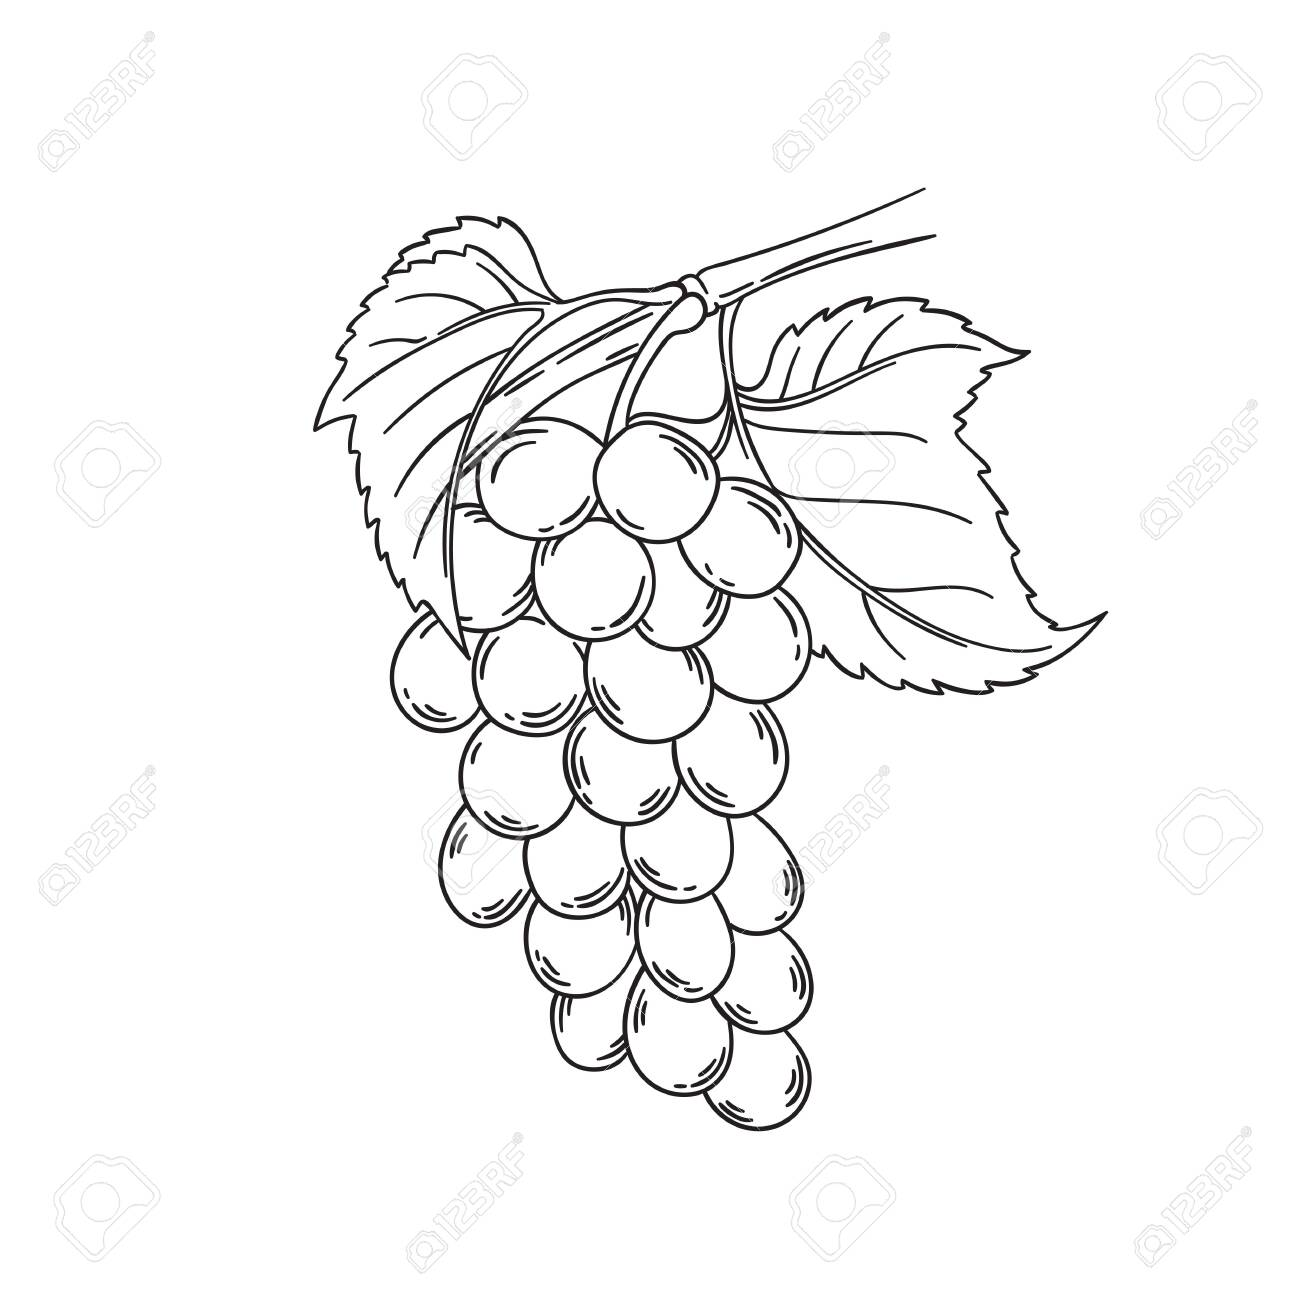 Grape Vine Vector Illustration Black Outline Drawing Isolated Royalty Free Cliparts Vectors And Stock Illustration Image 122579338